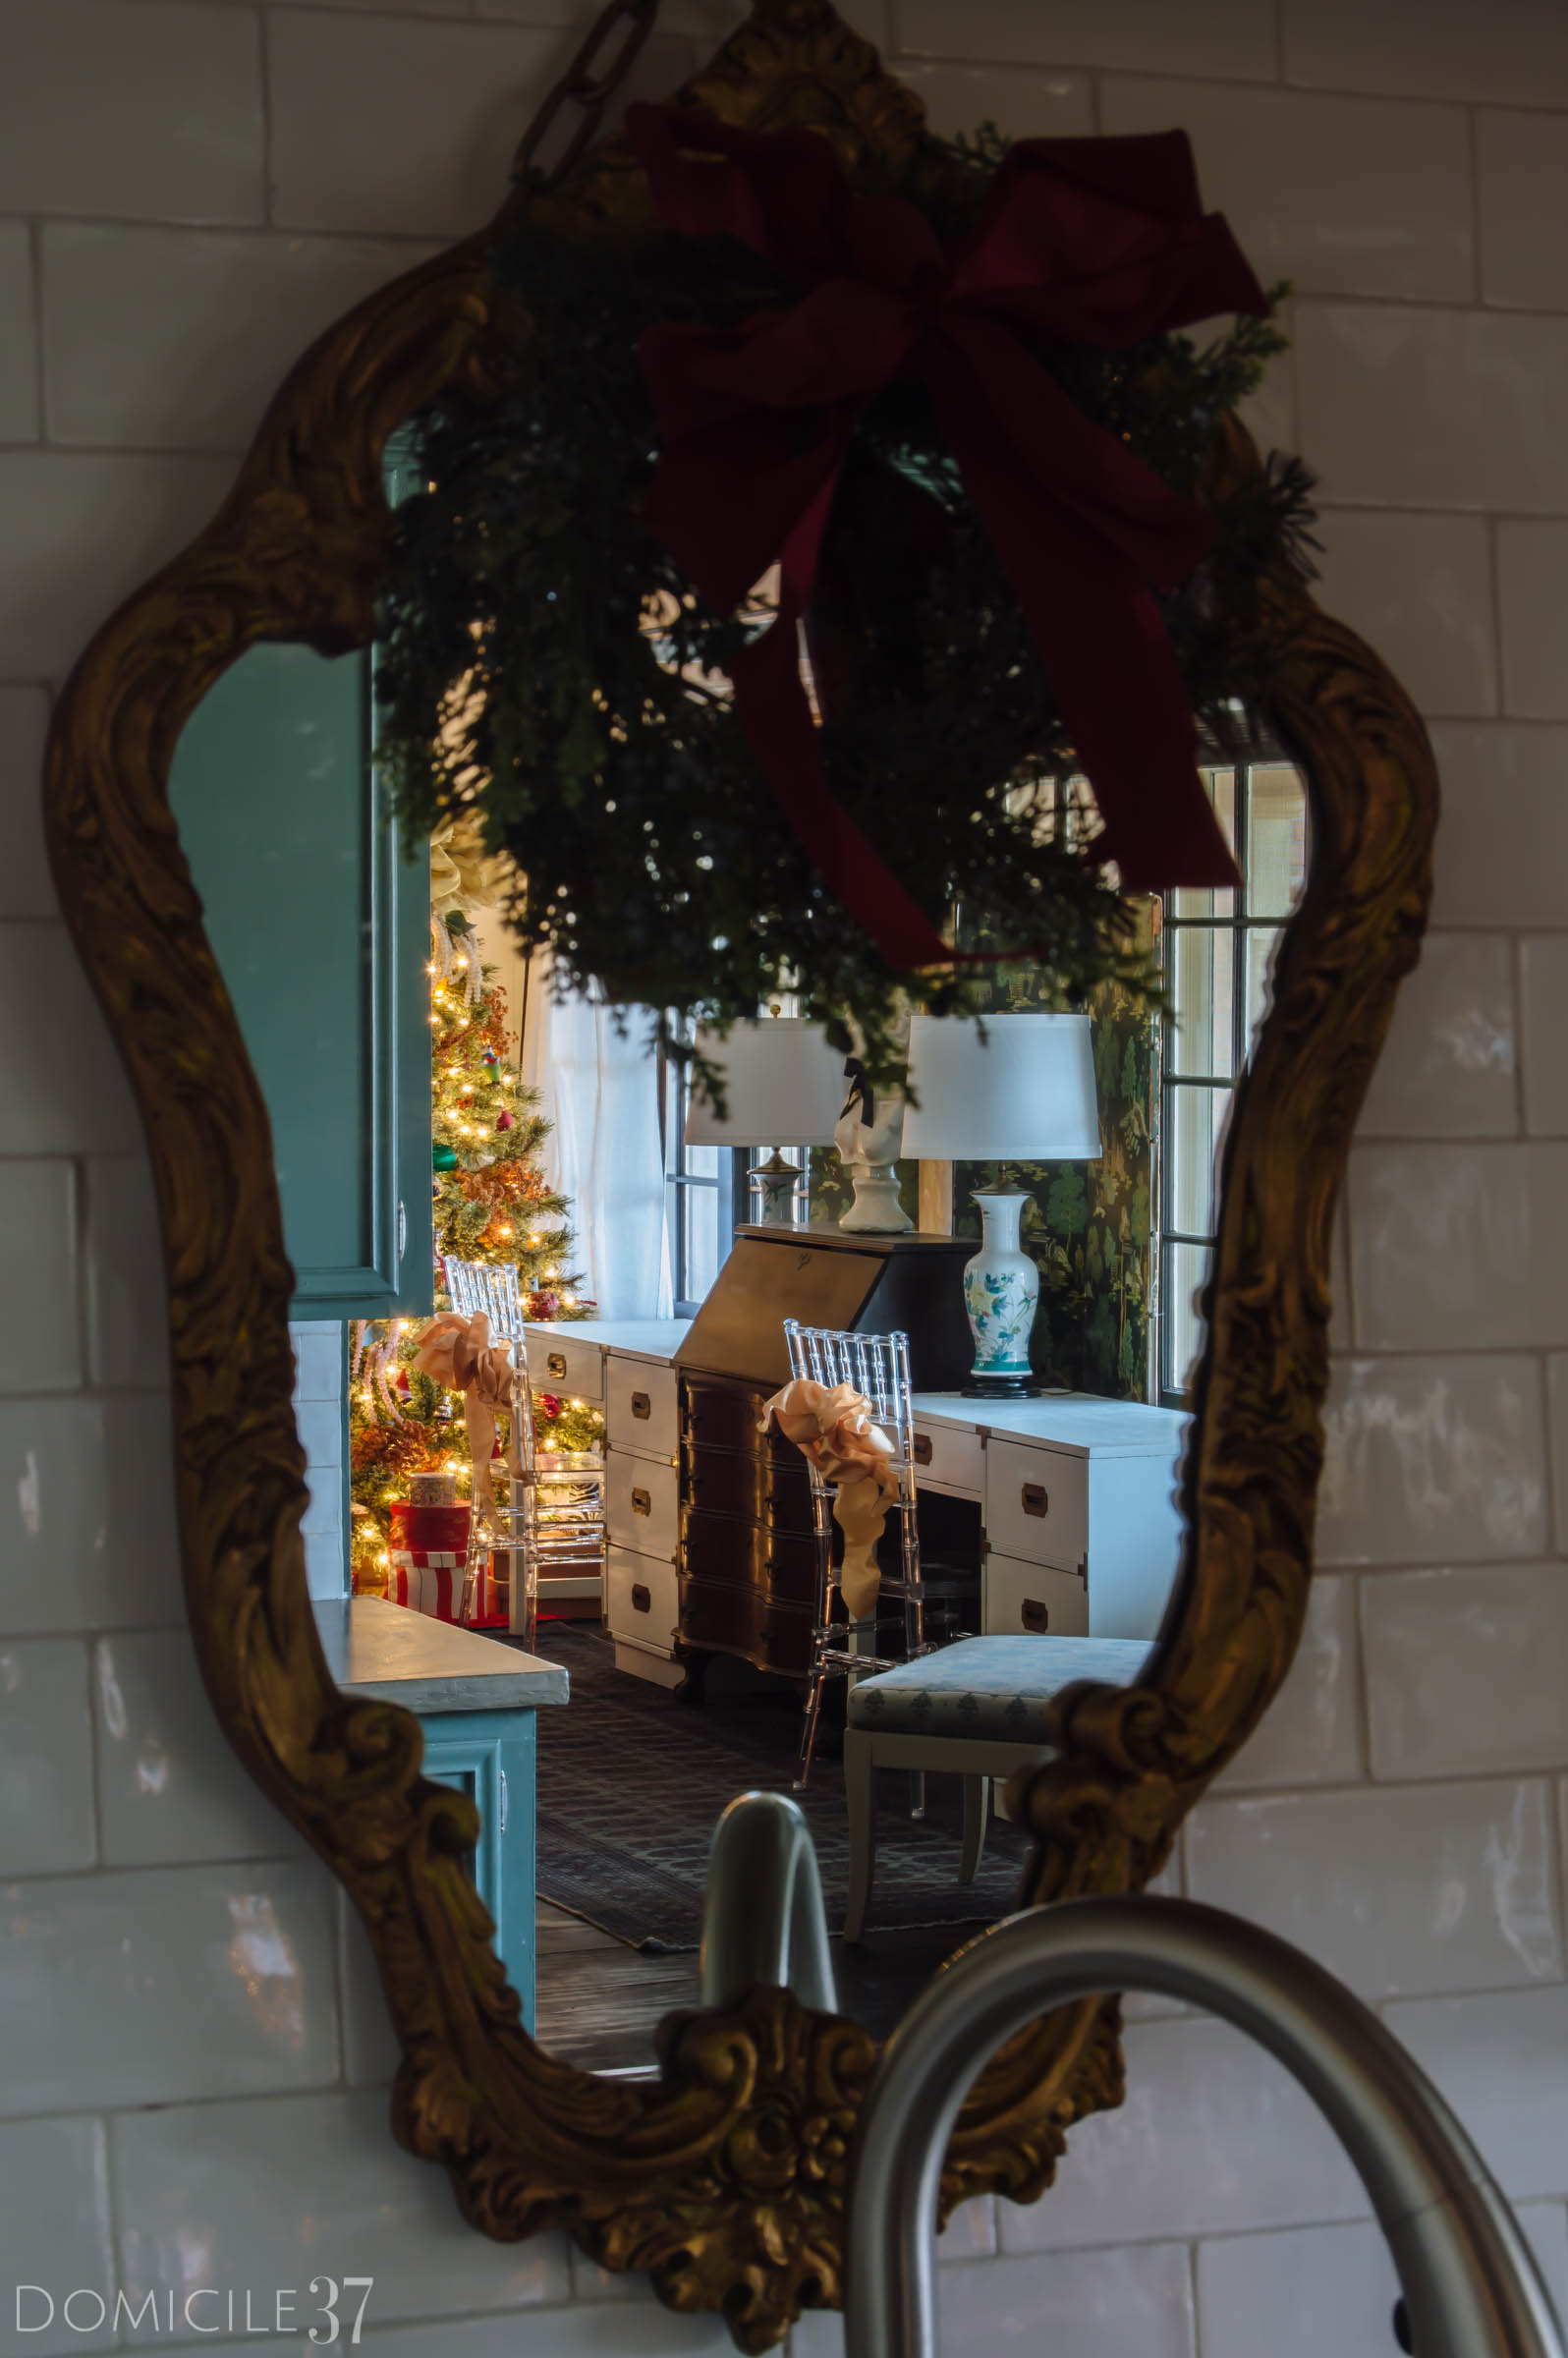 Mirrored Wreath, Christmas Decor in Kitchen,